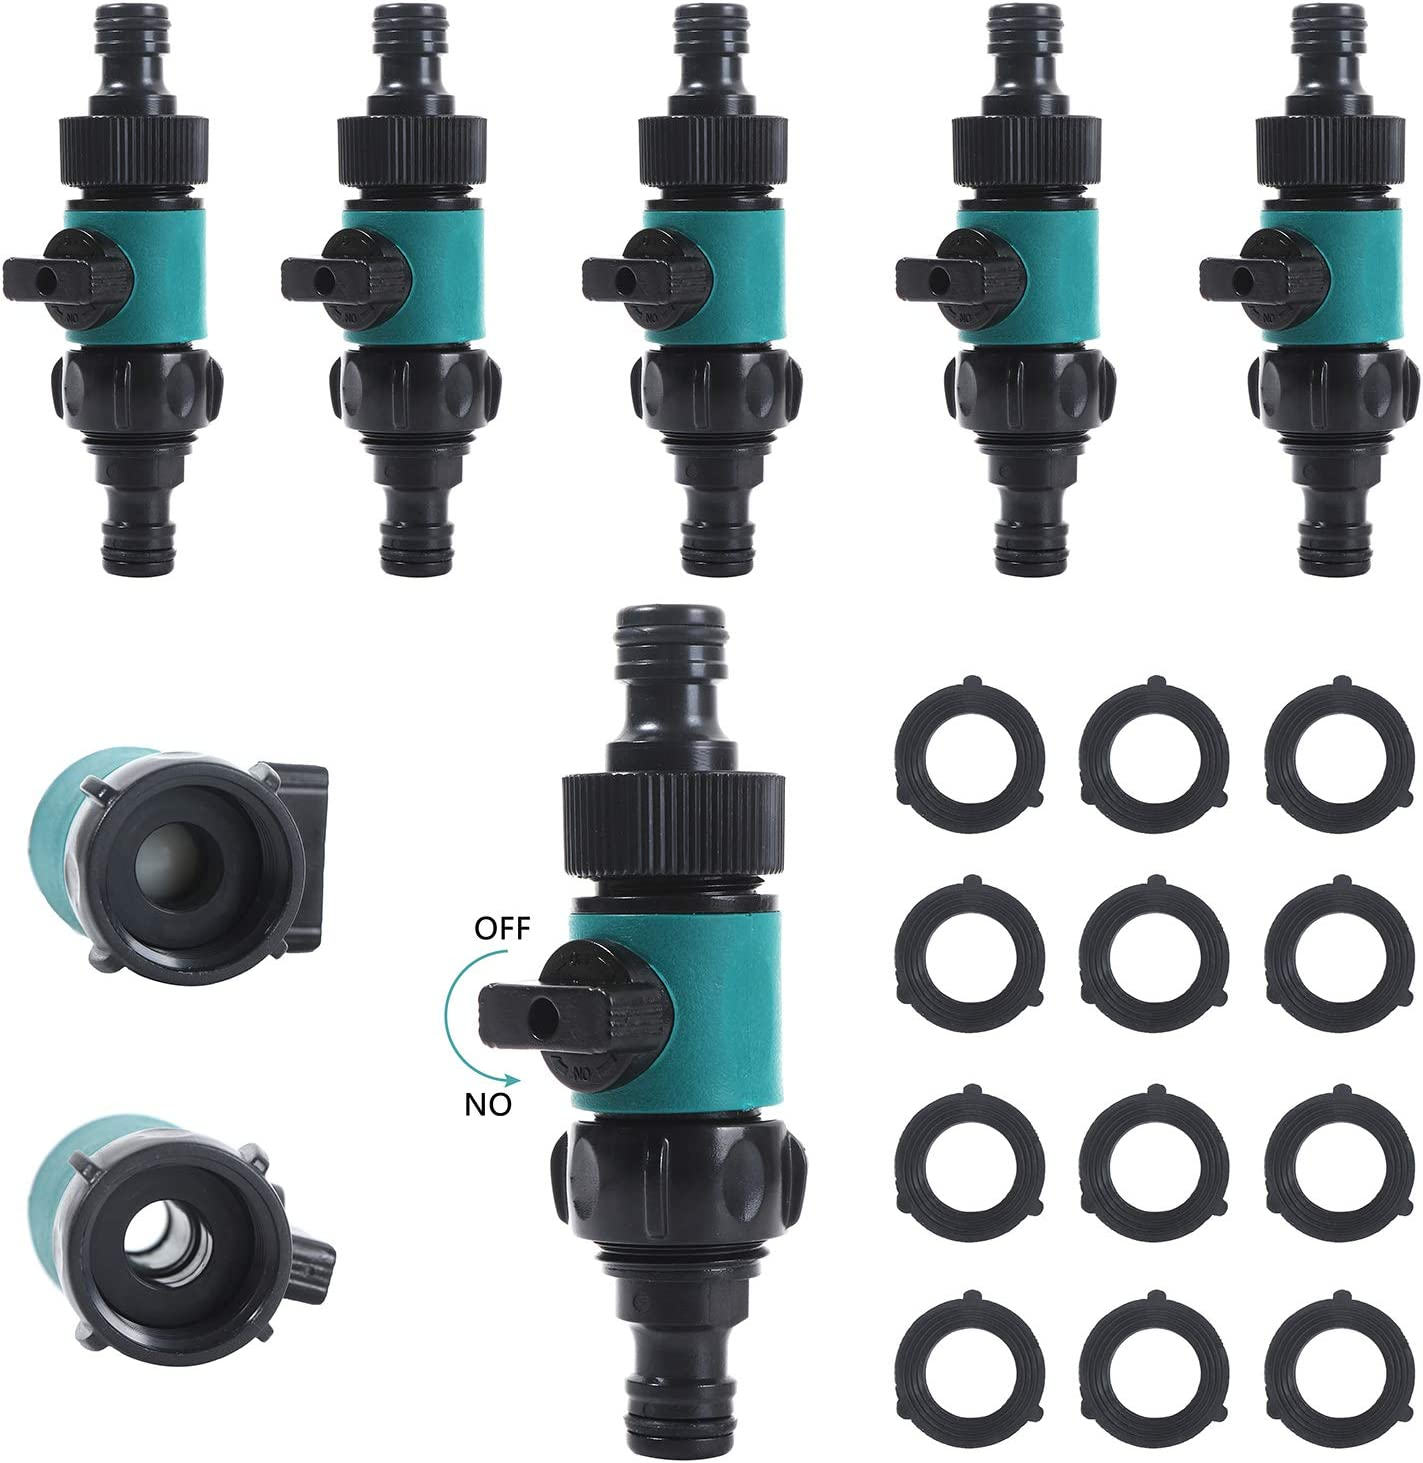 """ABS Plastic Quick Connects with Shut-off Valve Set Male and Female, Garden Hose Connect Water Hose Turn Off Valve Connector - 3/4""""Quick Connectors Sets with 12pcs Anti-Leak Ball Valve(6 Sets/ 12 Pc)"""